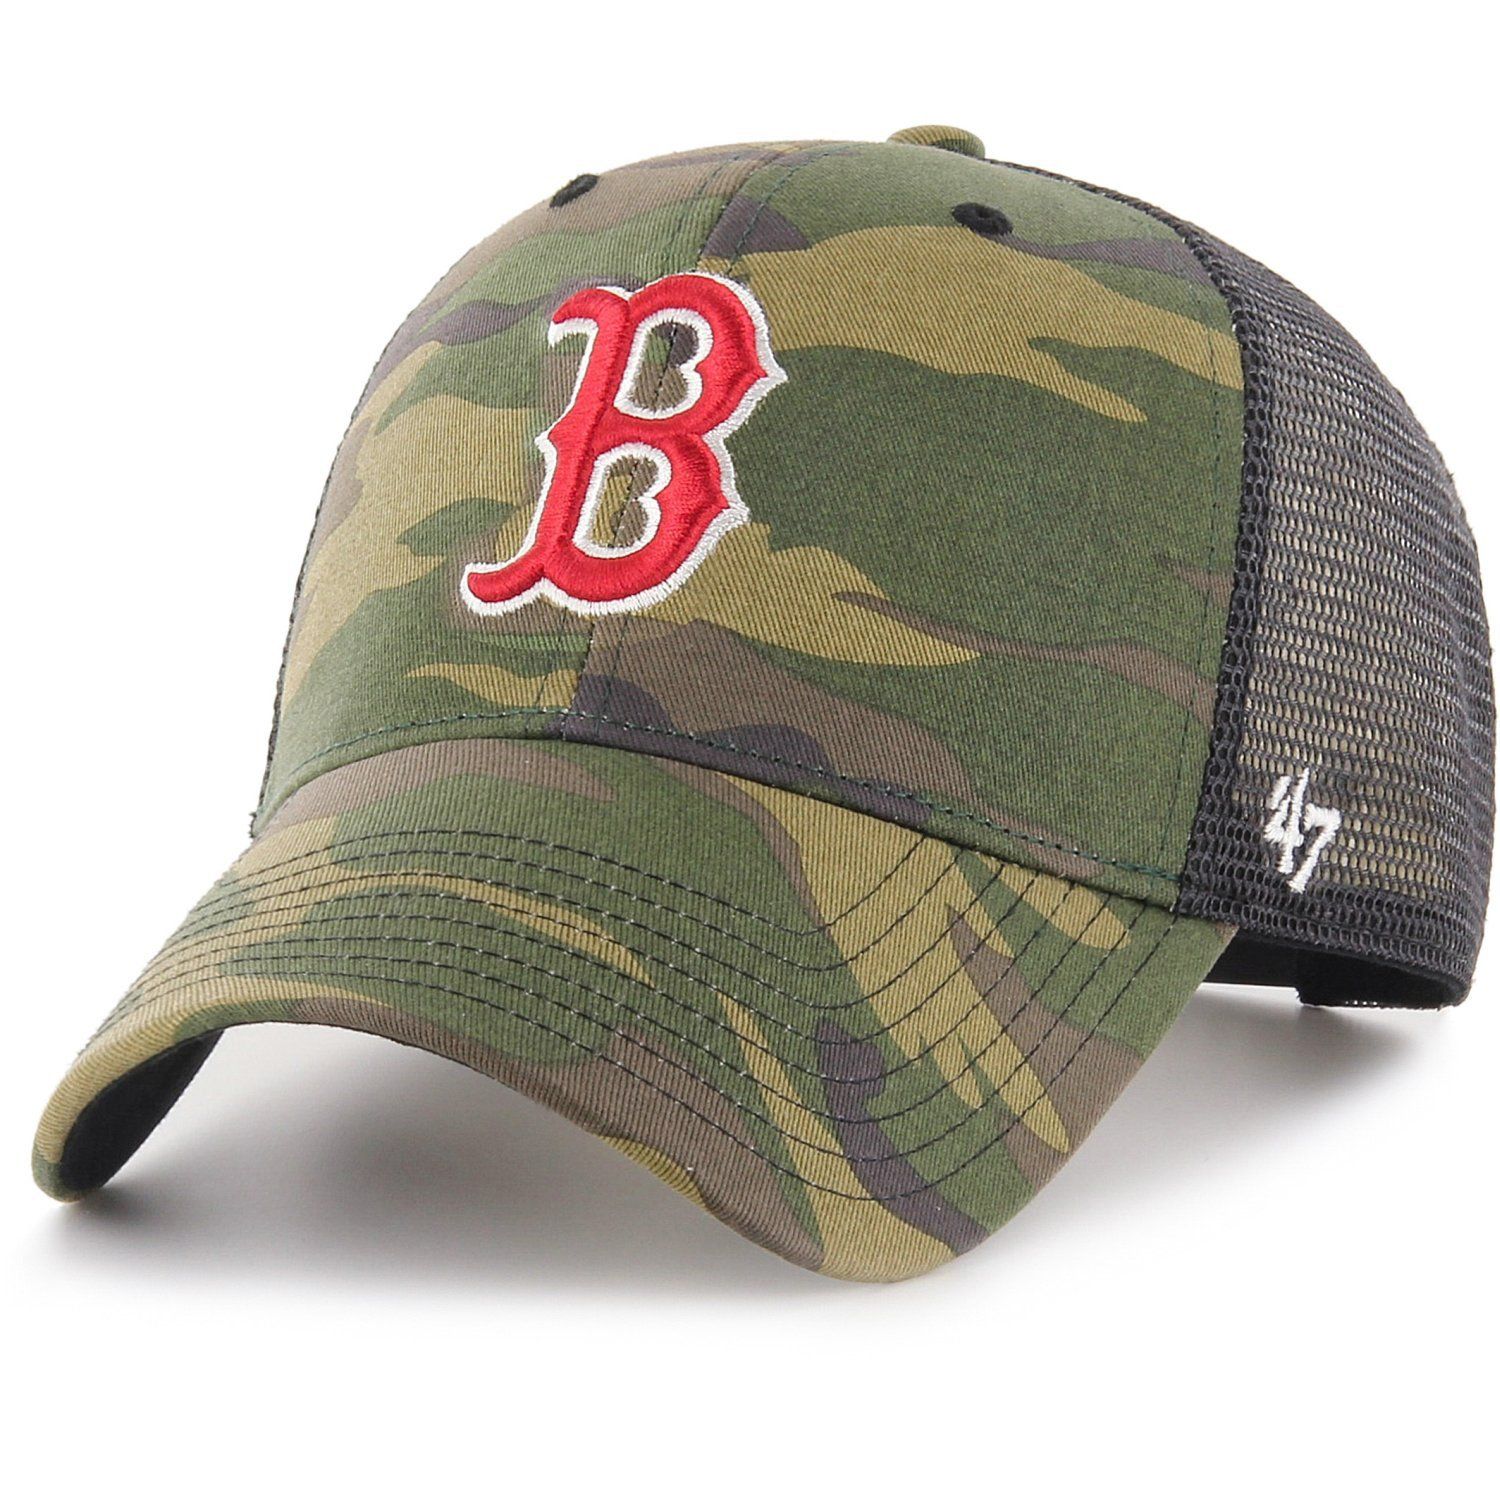 47 Brand Trucker Cap - BRANSON Boston Red Sox wood camo 193234775018 ... 90996380f0d